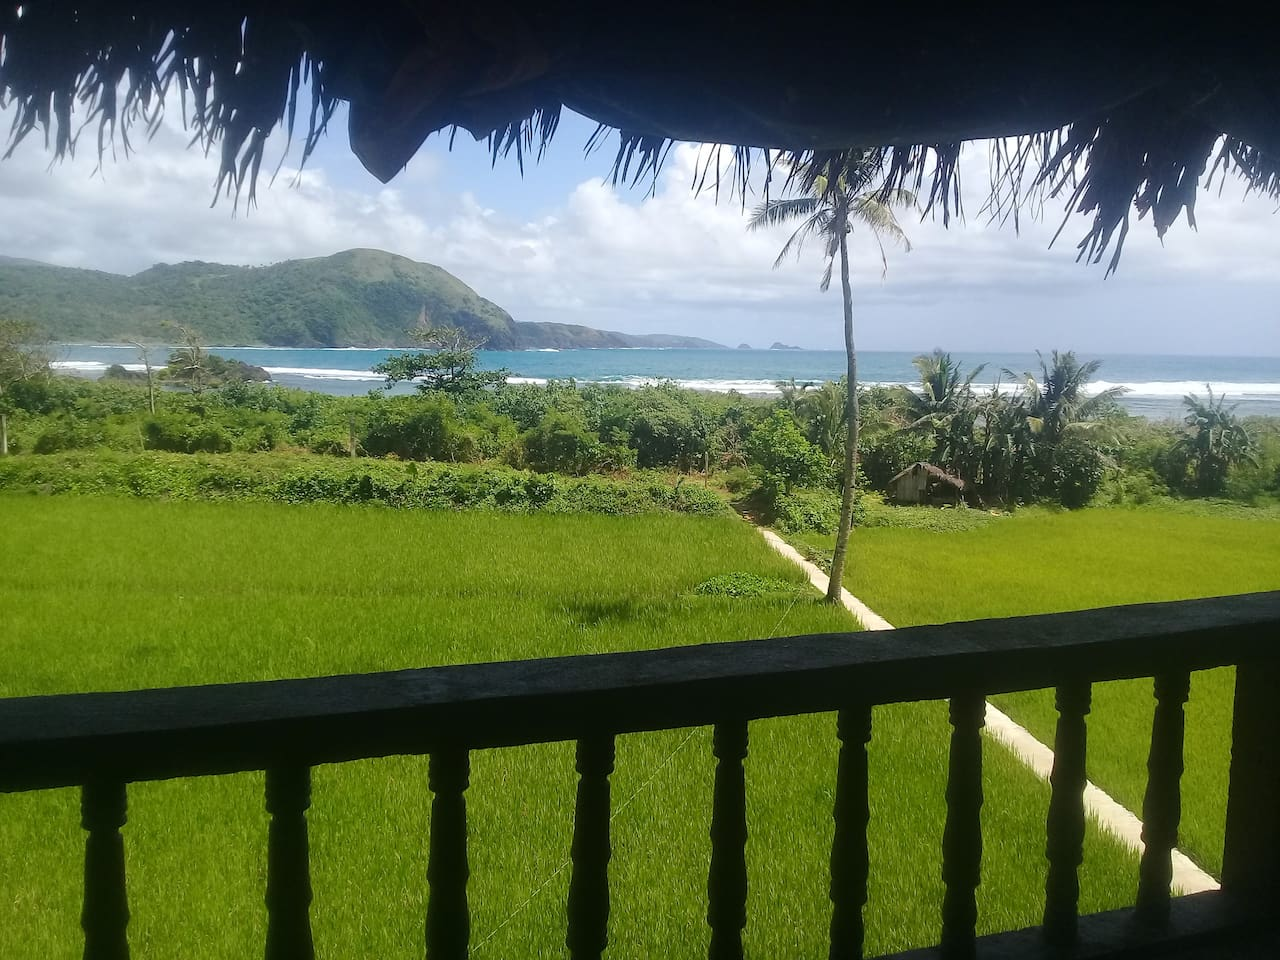 View from the restaurant overlooking Majestics surf break